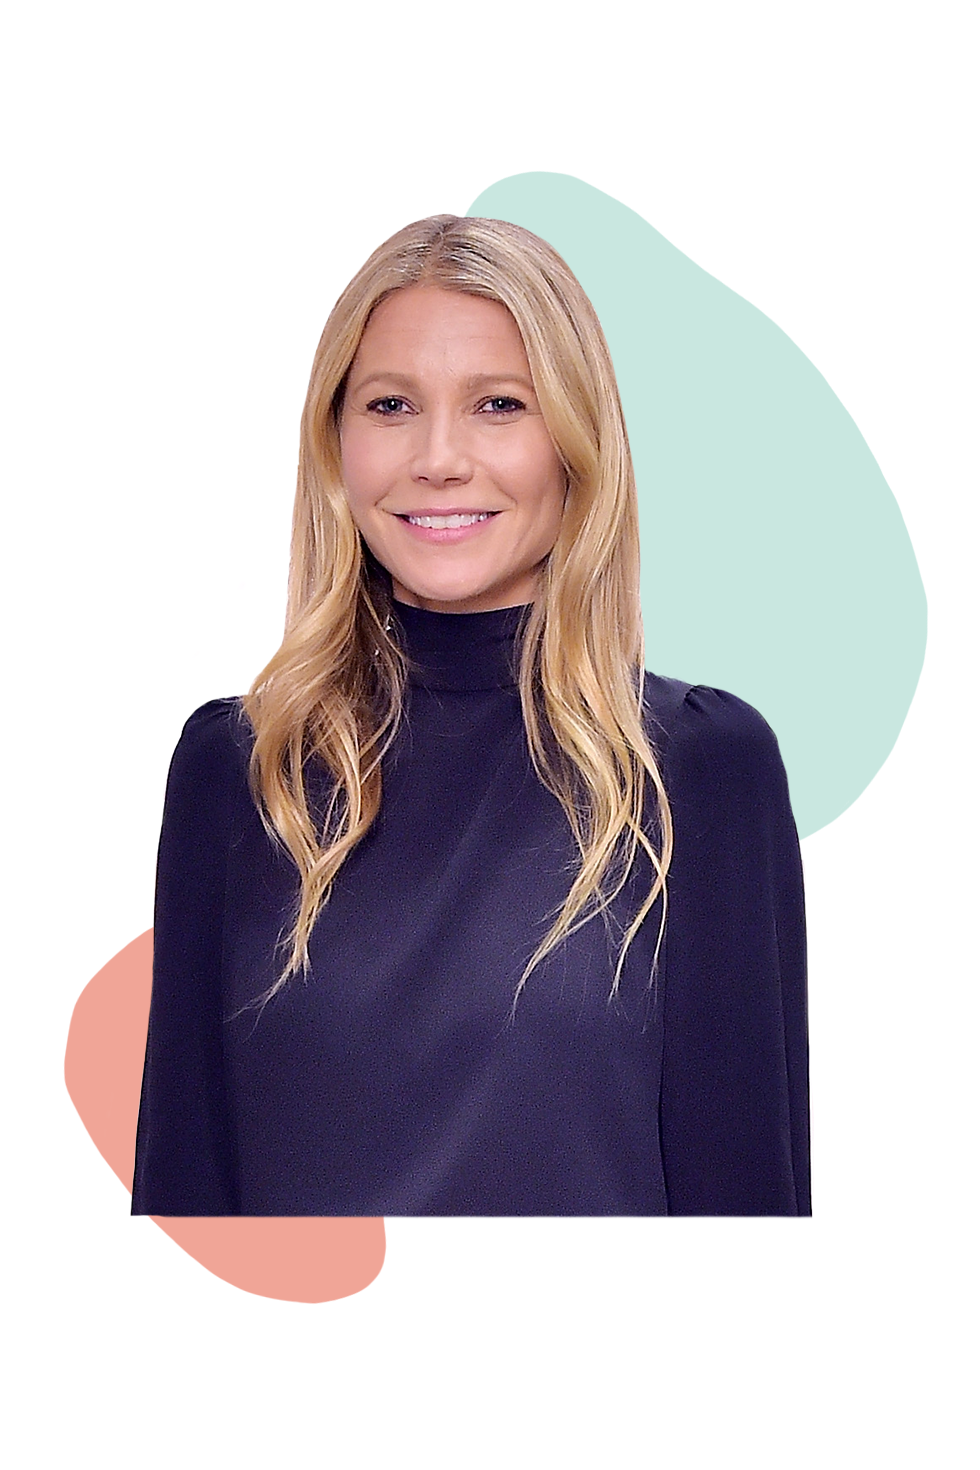 Gwyneth Paltrow Paltrow is often credited with popularizing (and normalizing) CBD use within the beauty and wellness industries, thanks to featuring the ingredient on her lifestyle brand Goop's website . Along with sharing infused cocktails, Paltrow's team has also covered a first-timer's experience at a CBD boutique, and how the smart set plans CBD dinner parties.